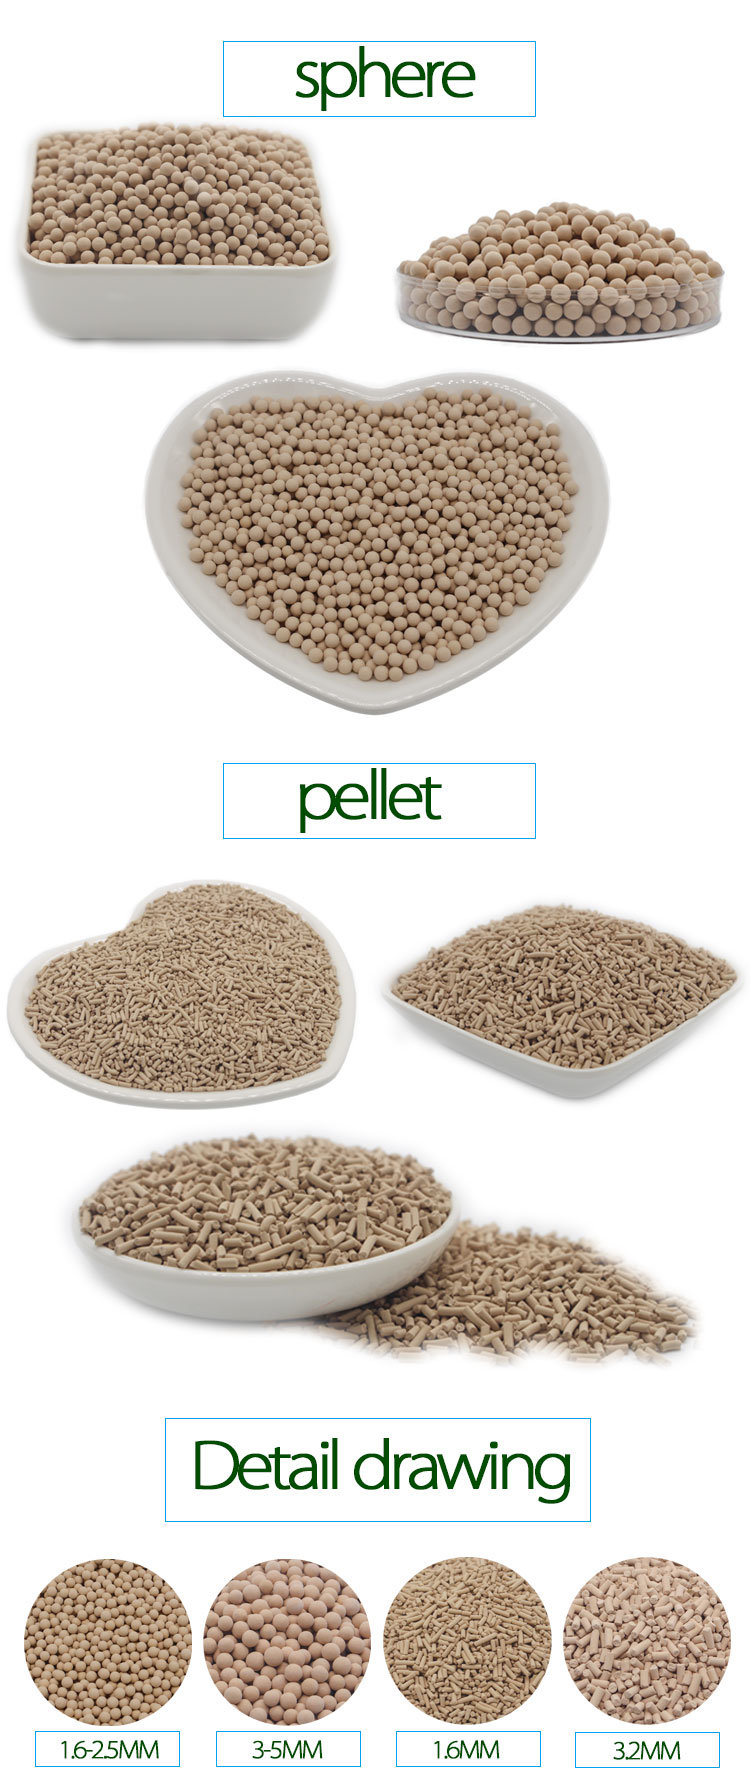 Xintao 5A Molecular Sieve for High Purity N2, O2, H2 Production